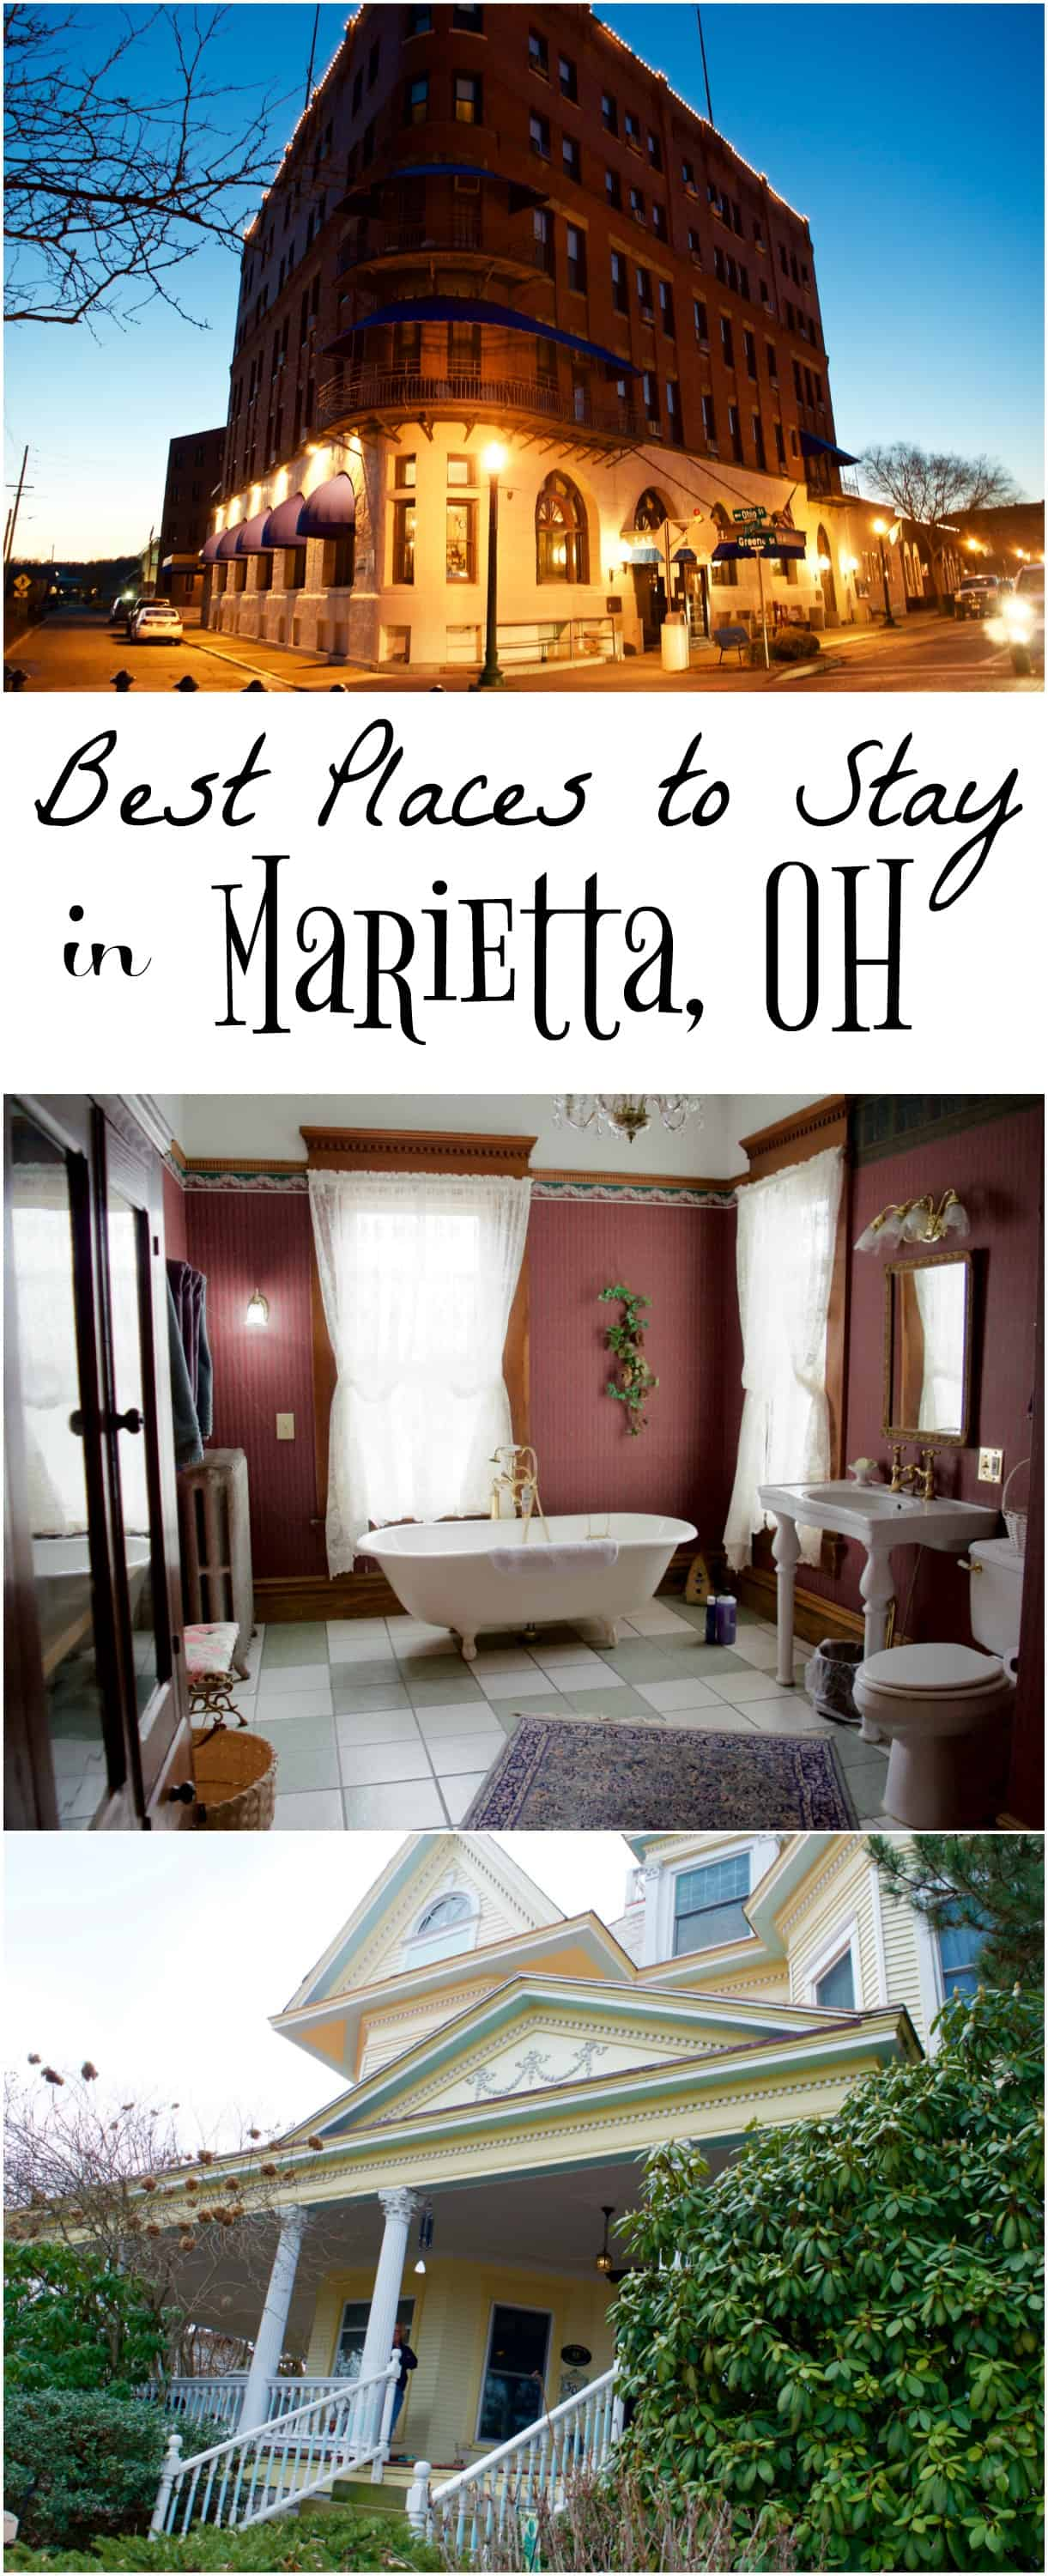 Best Places to Stay in Marietta Ohio